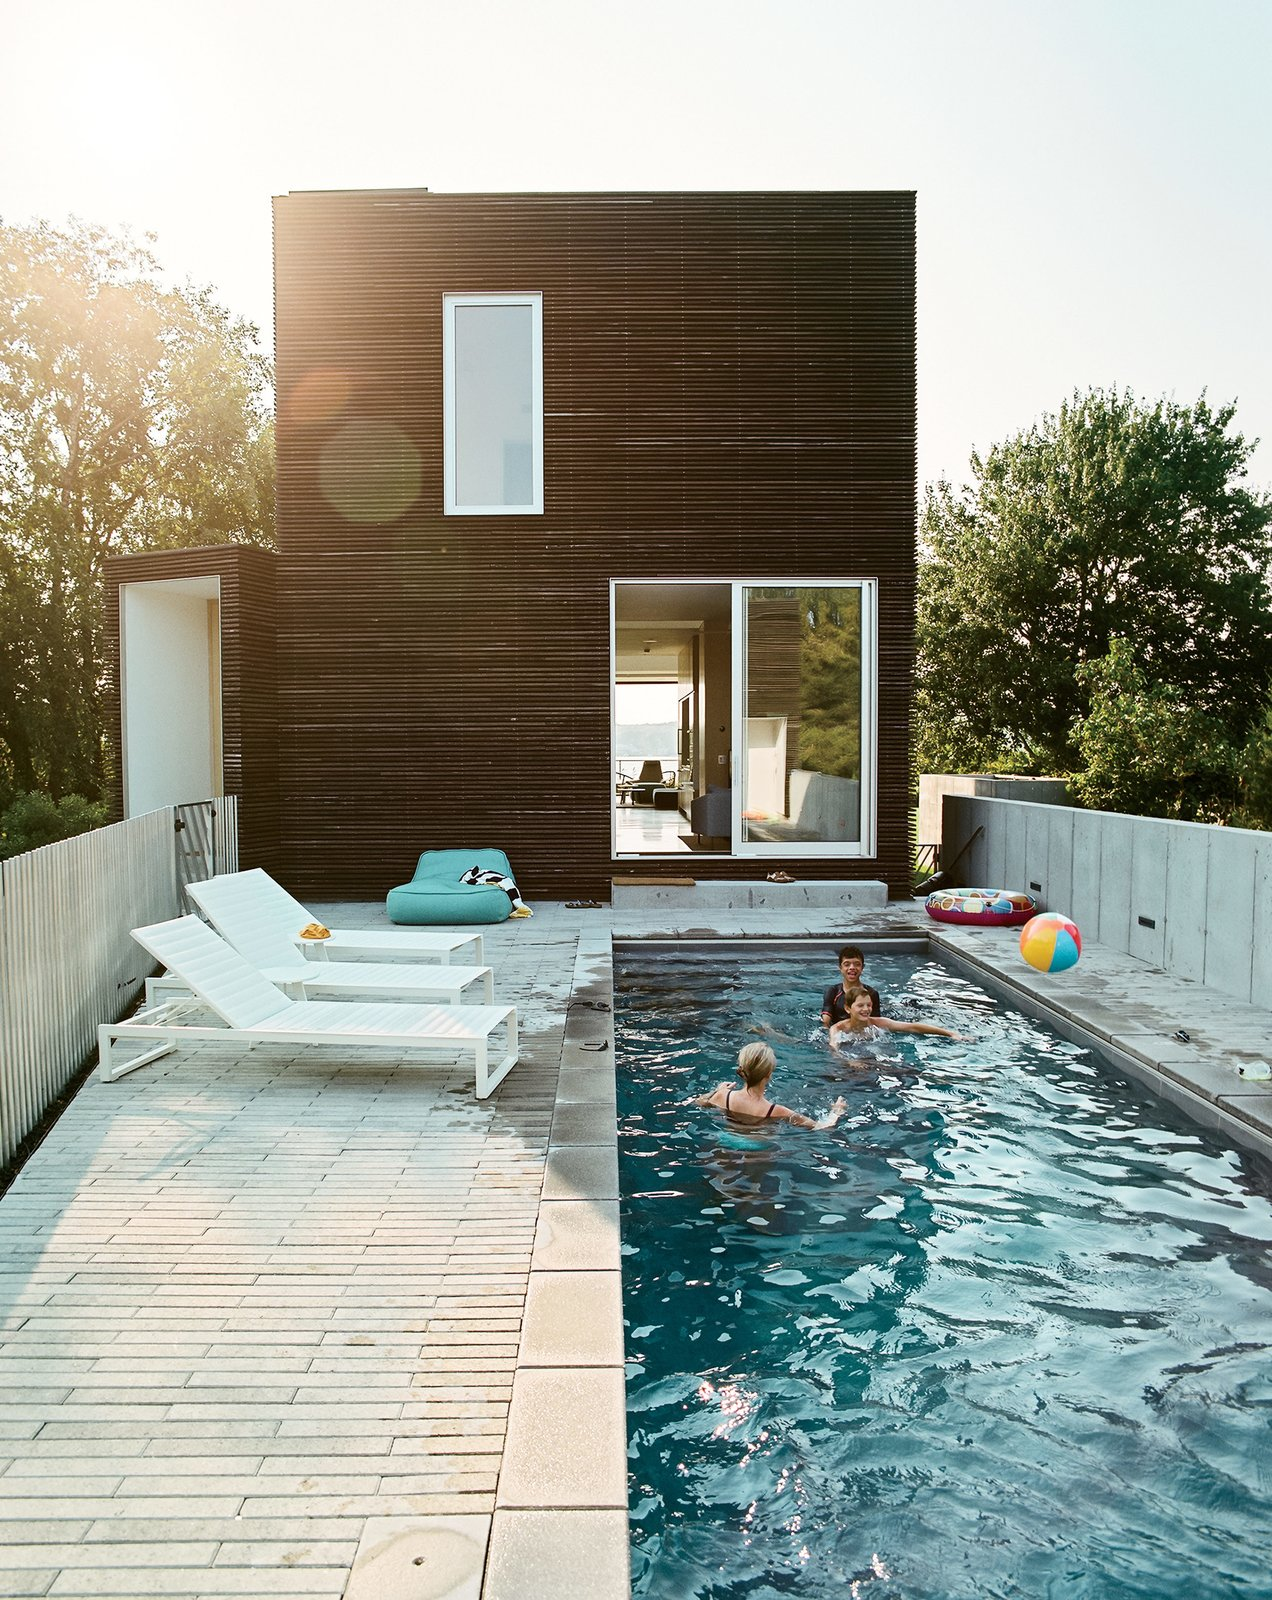 #pooldesign #pool #terrace #Eos #loungechair #inflatable #toys #modern #minimal #exterior #outside #vacationhome #family #landscape #midcentury    Photos from Indoors/Outdoors